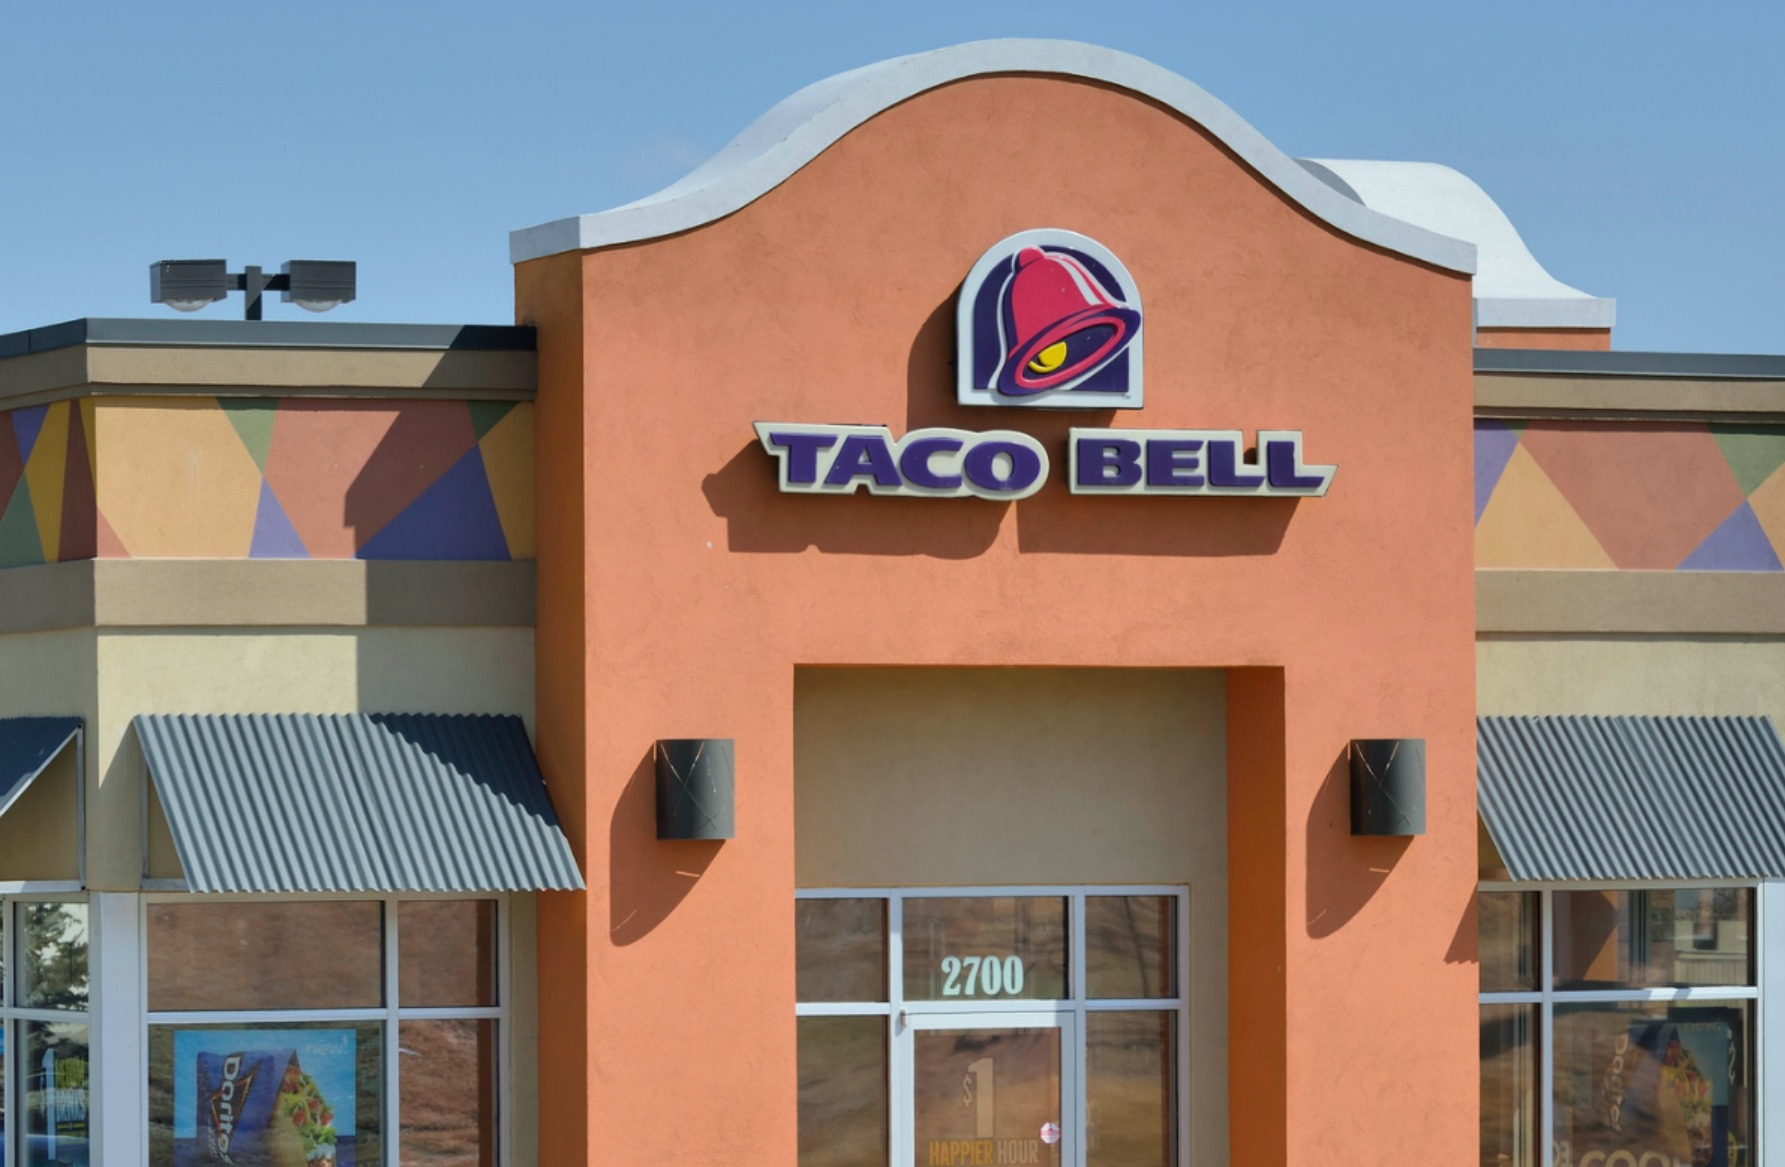 Taco Bell employee's inspirational messages praised by customers